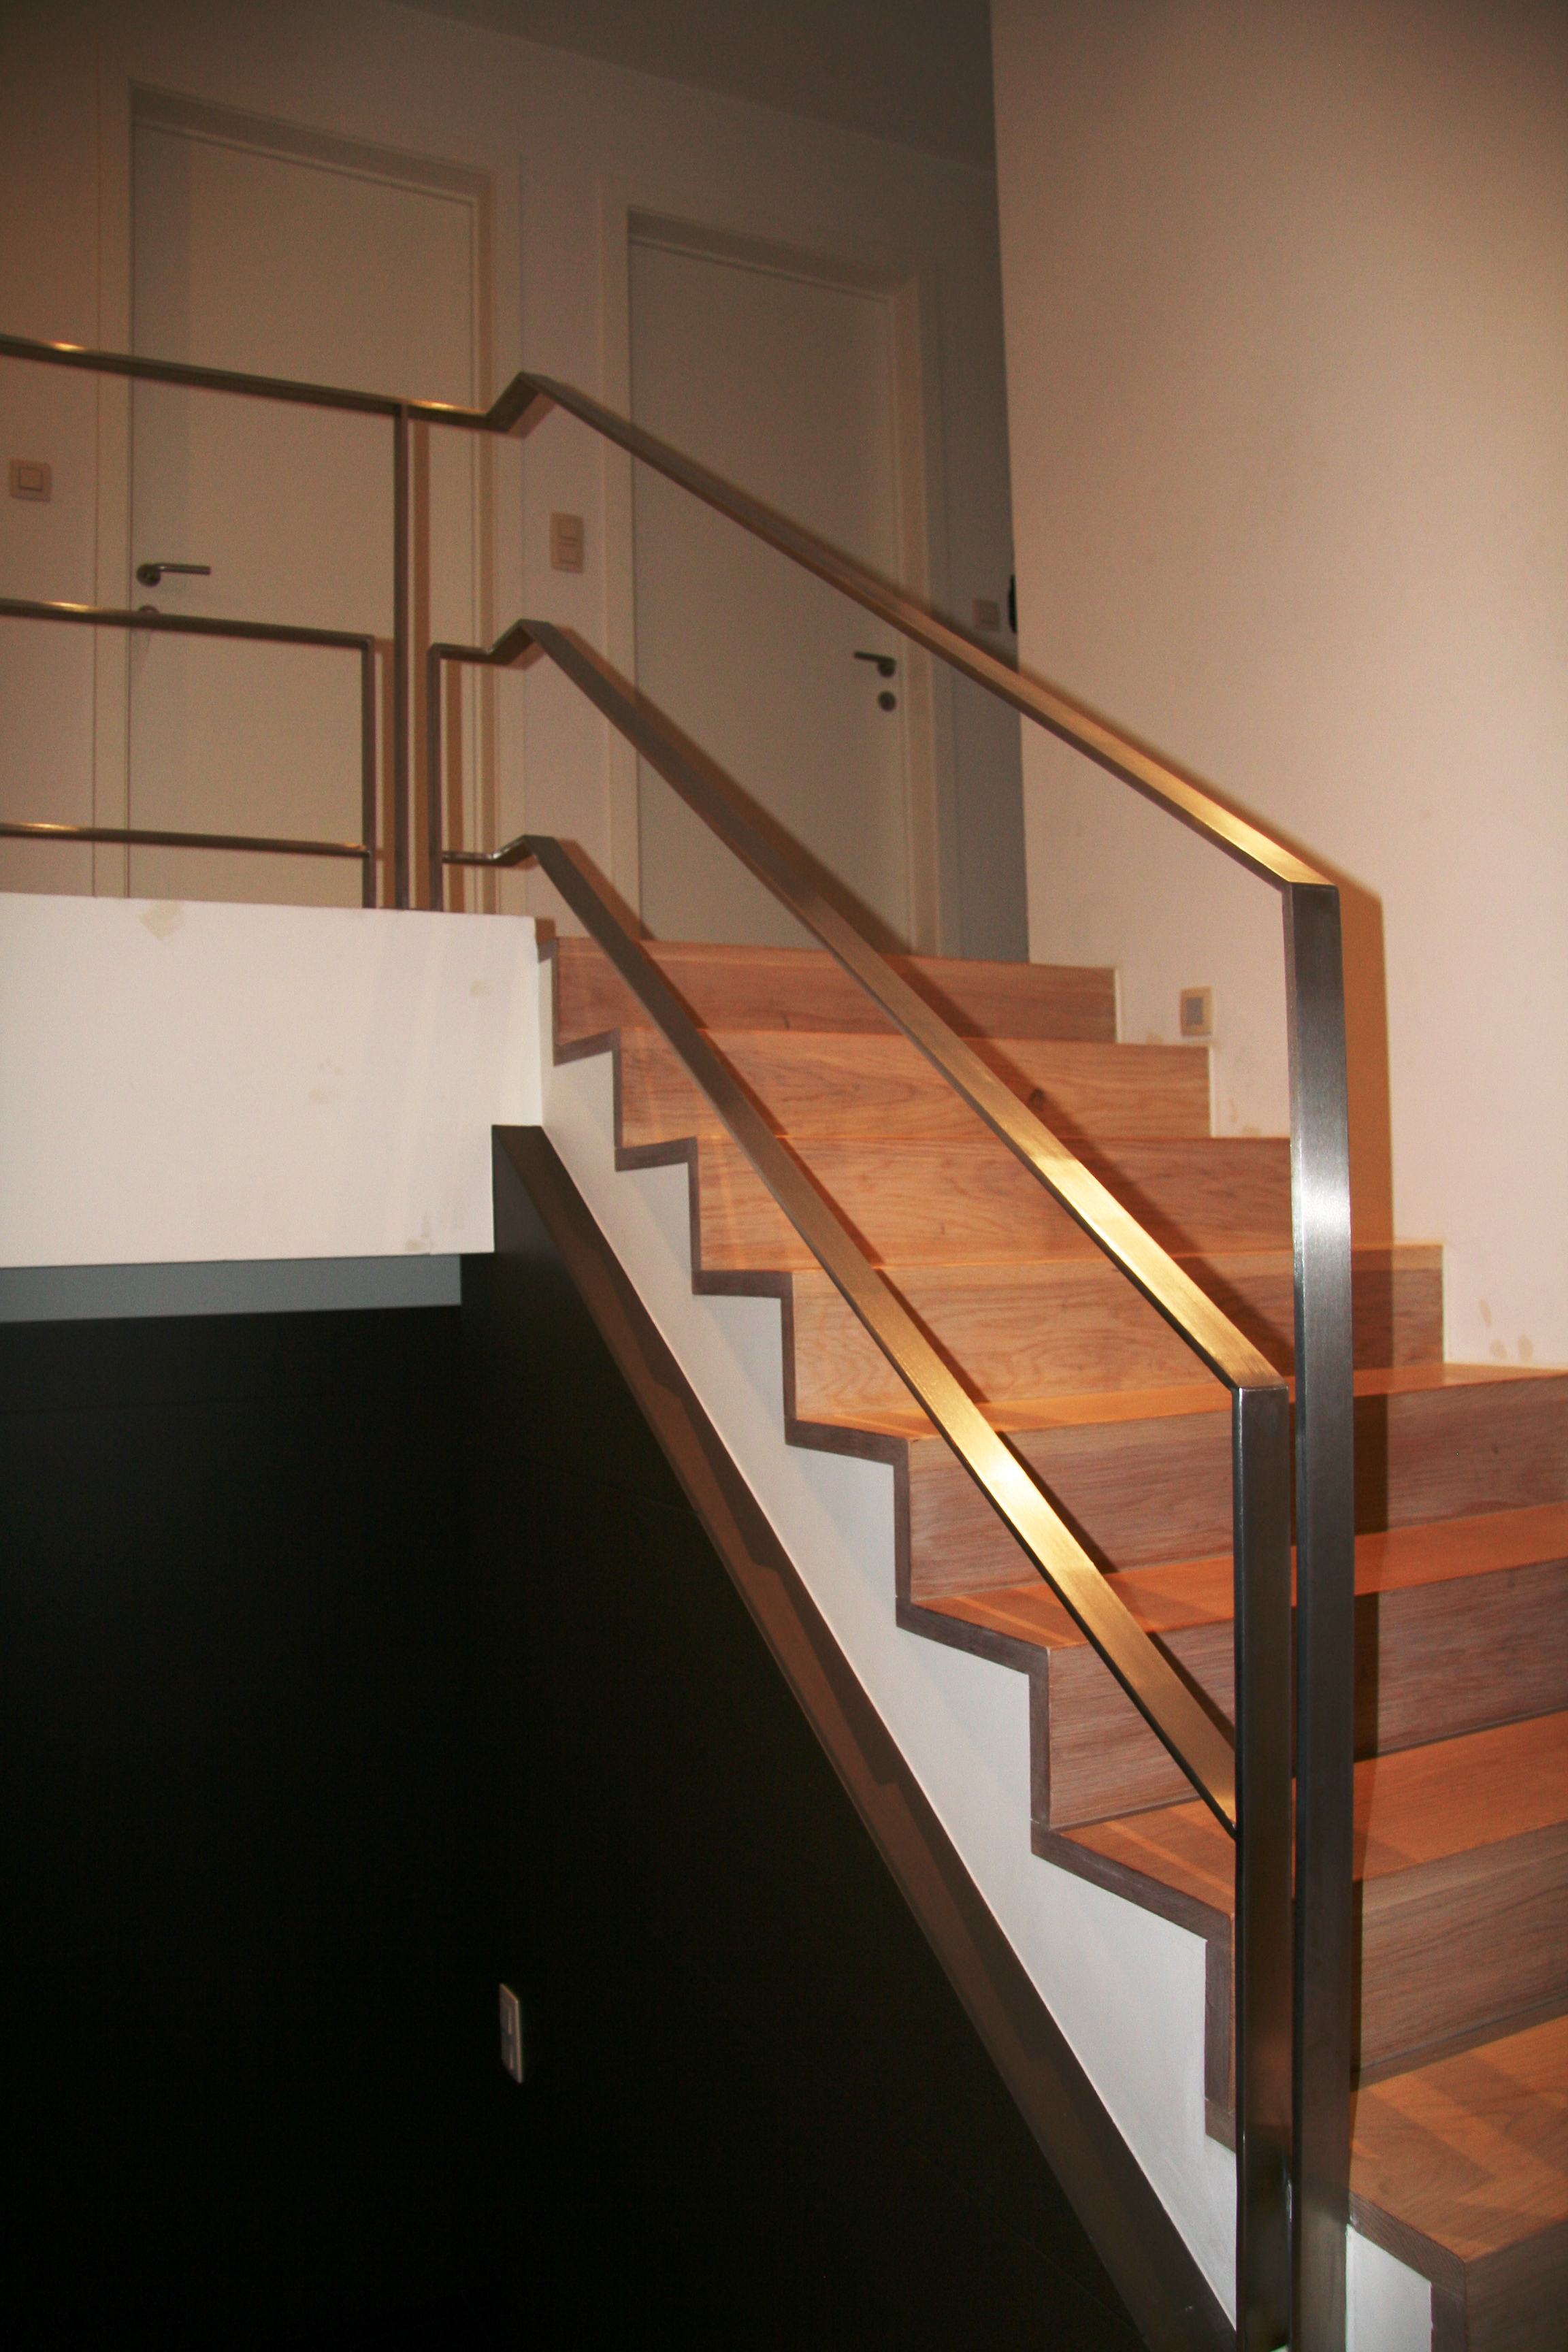 inox balustrade op houten trap en overloop